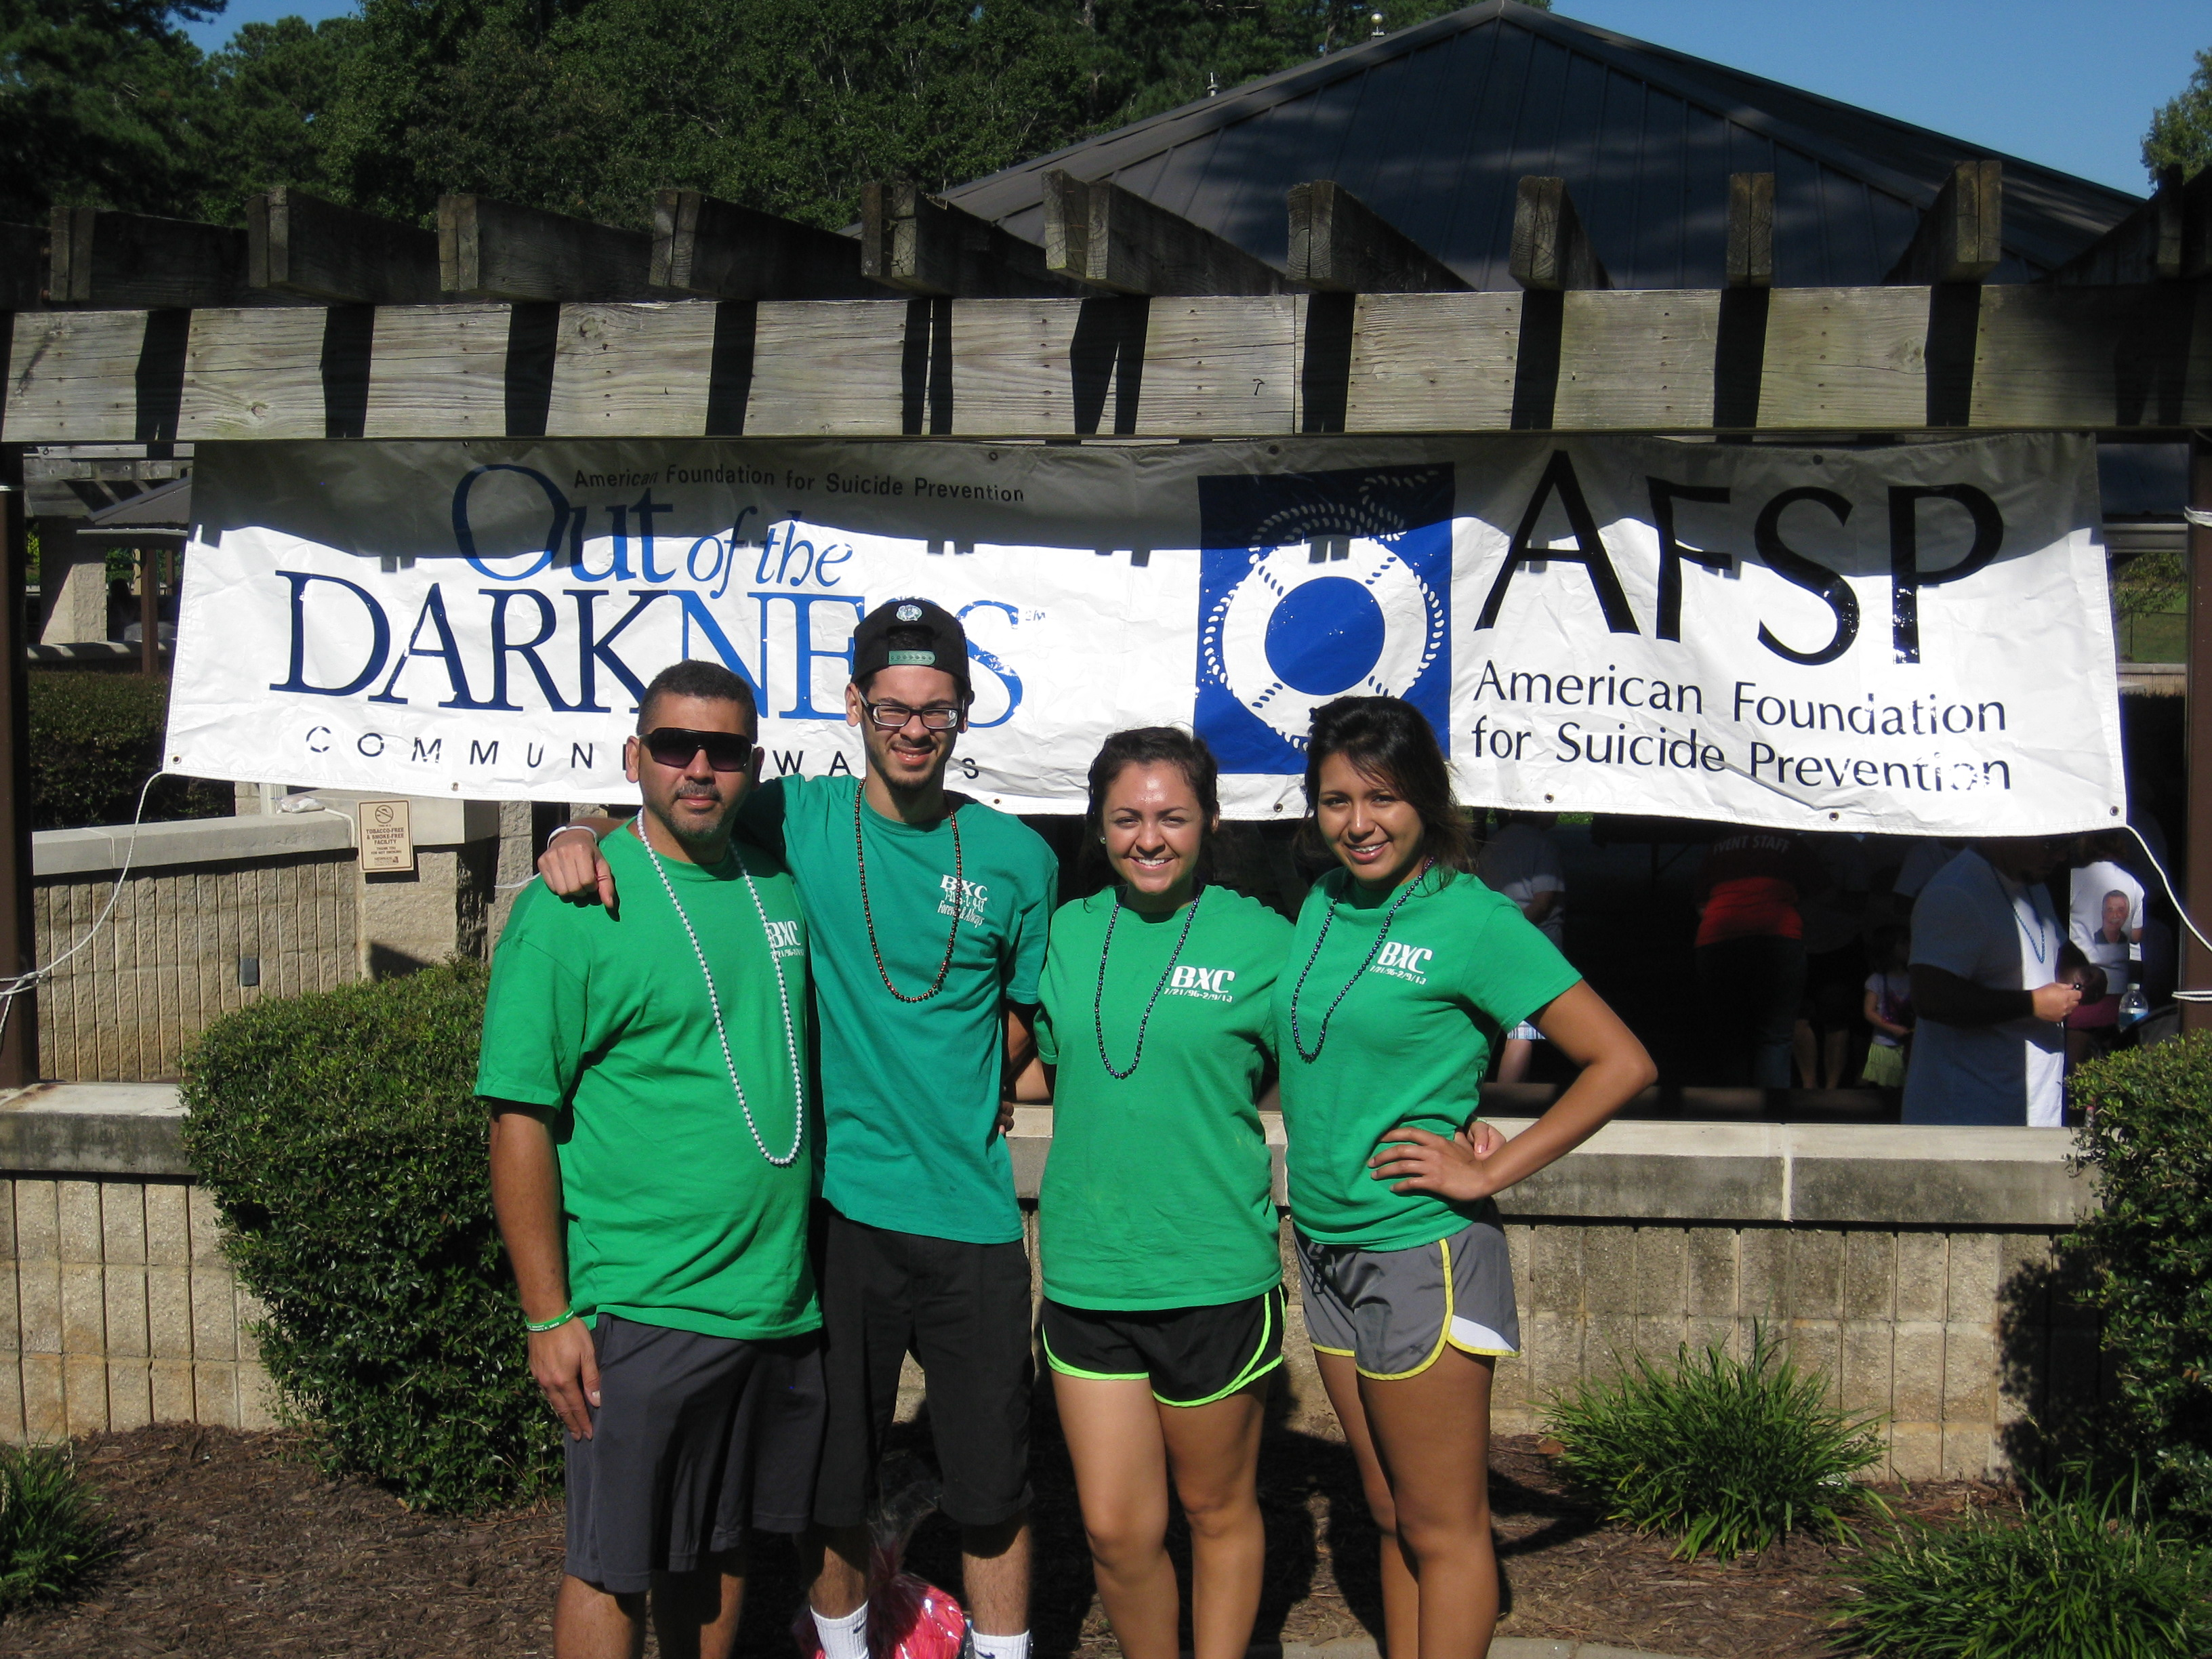 Cowetta Out of the Darkness Walk